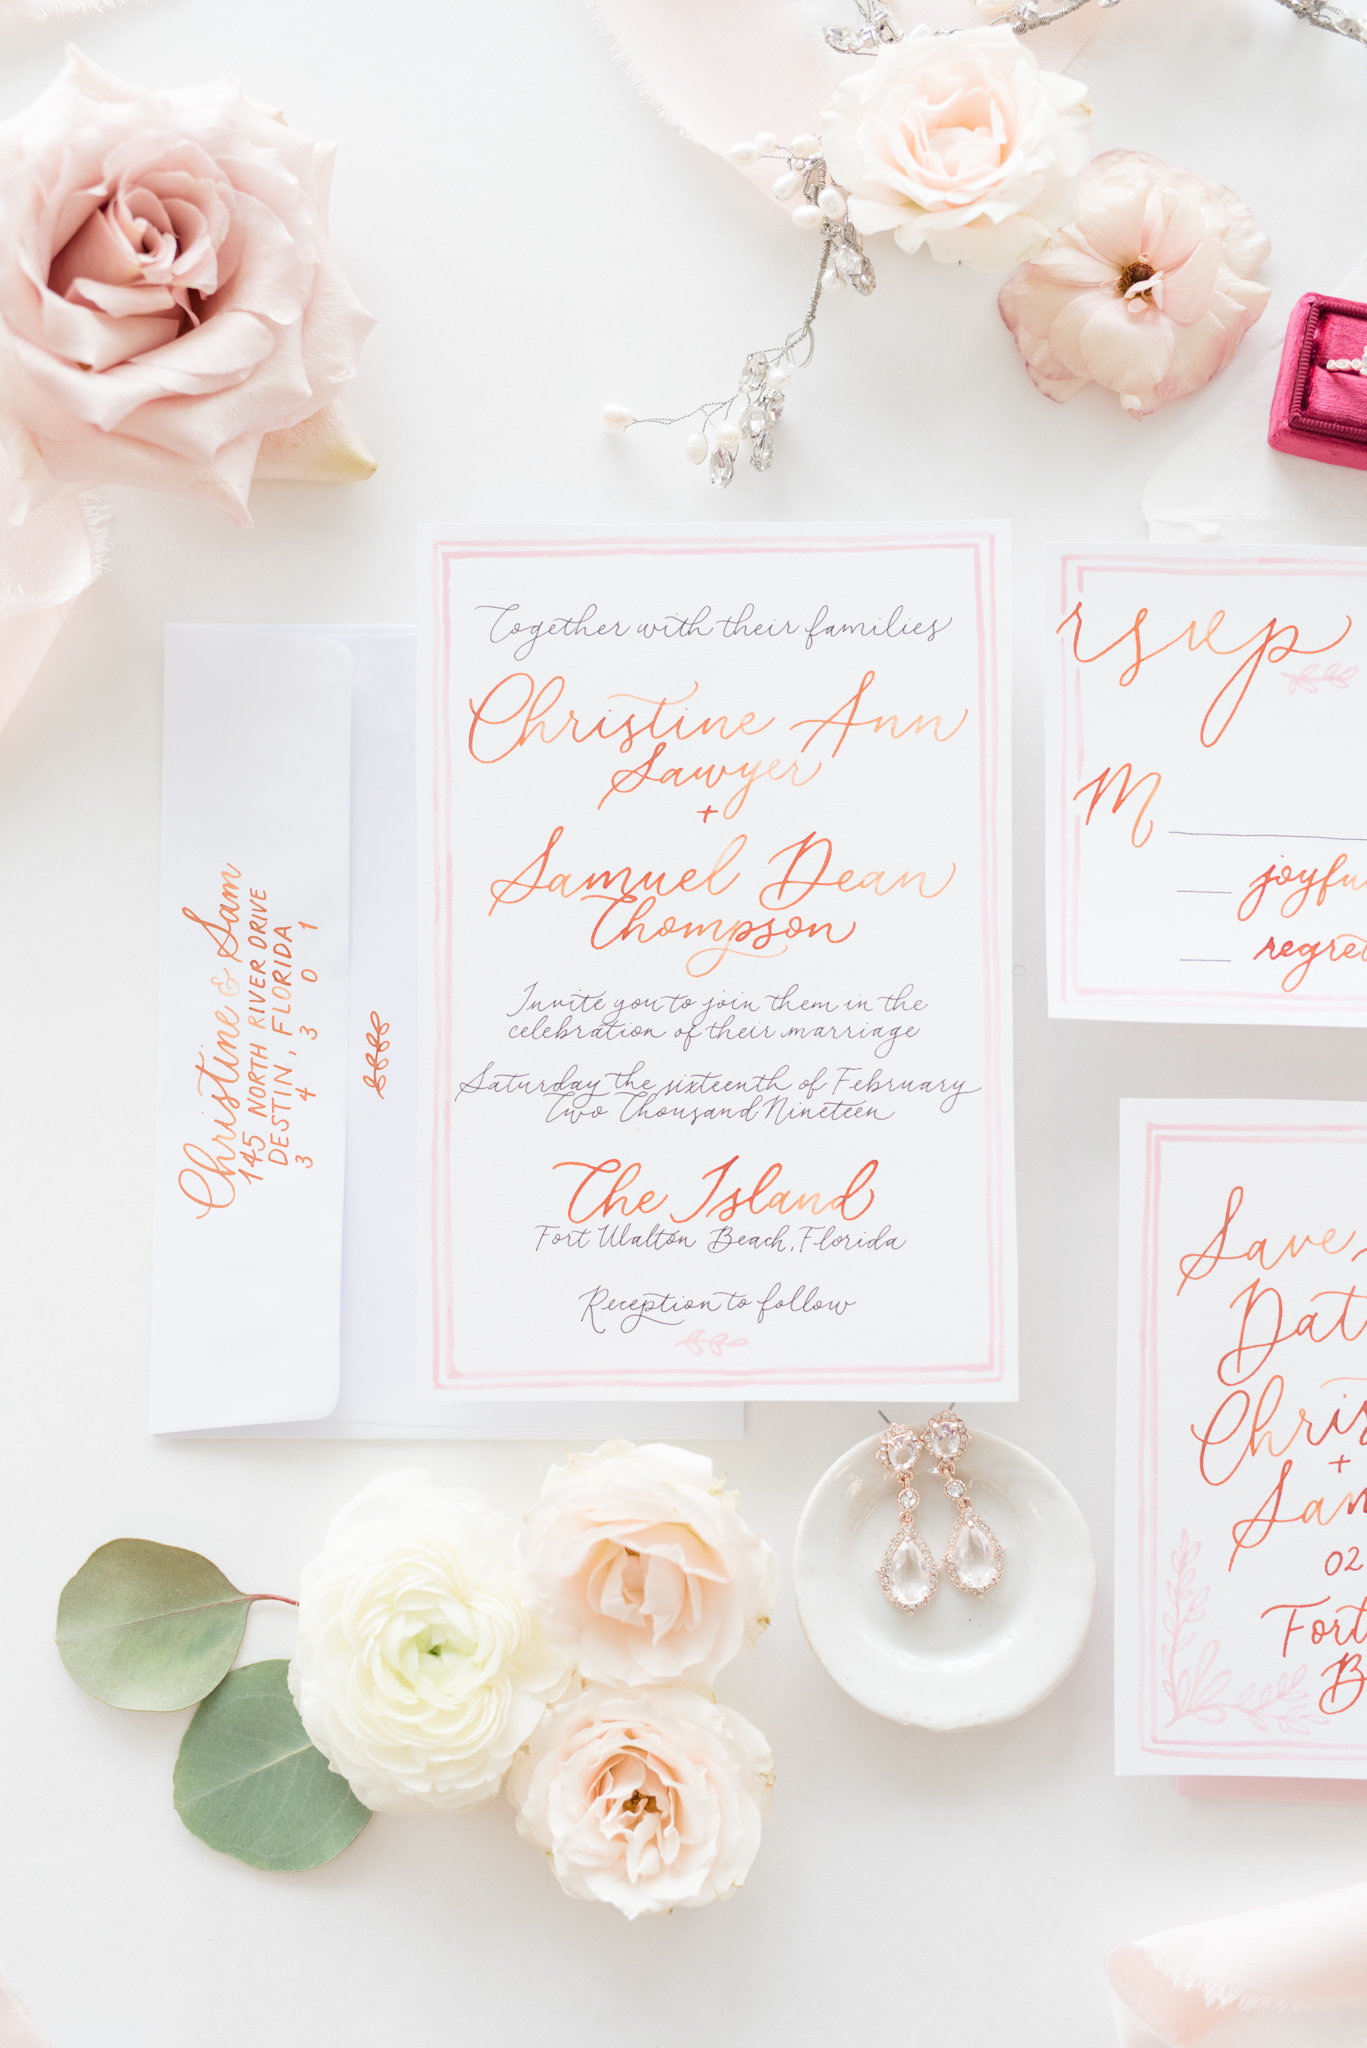 White and pink wedding invitation